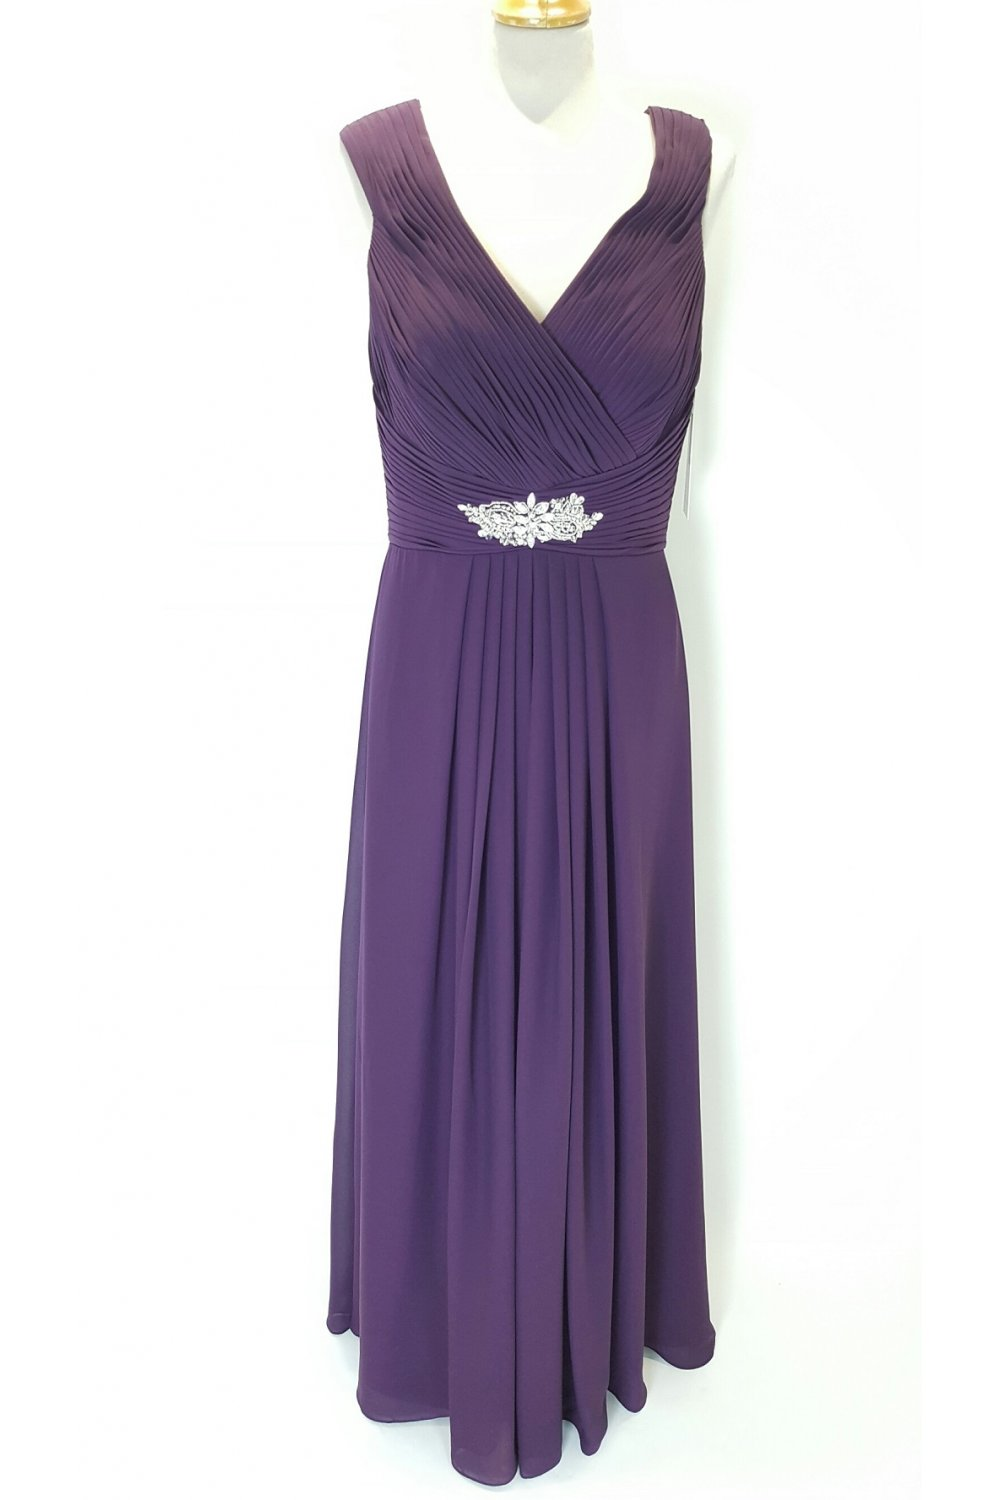 Serenade Bridesmaid dresses by Tiffanys, UK stock at cheapest prices